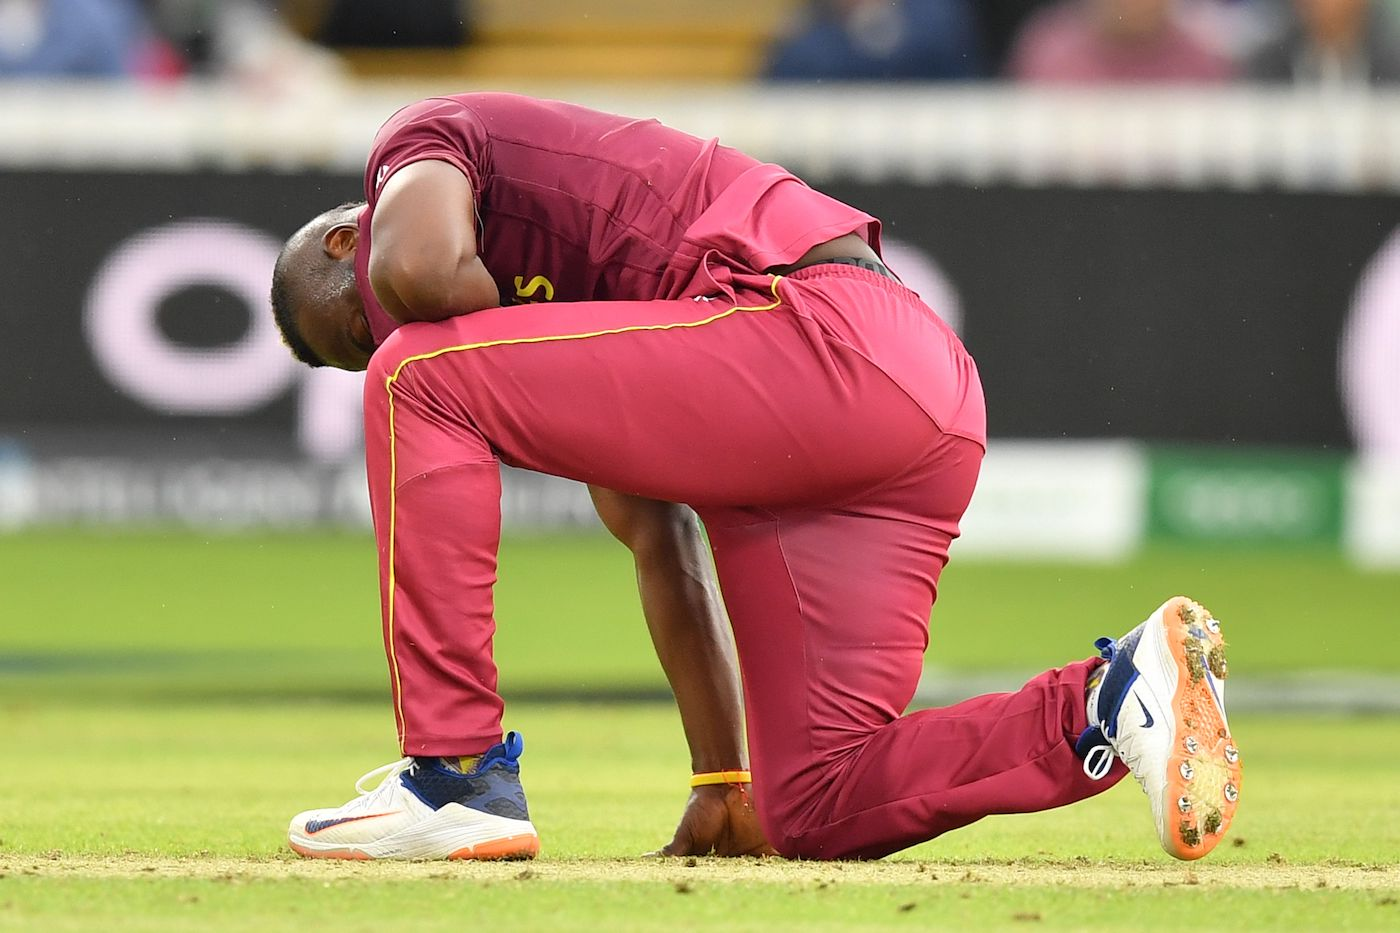 ICC World Cup 2019: Andre Russell Has No Regret After Getting Ruled Out 1